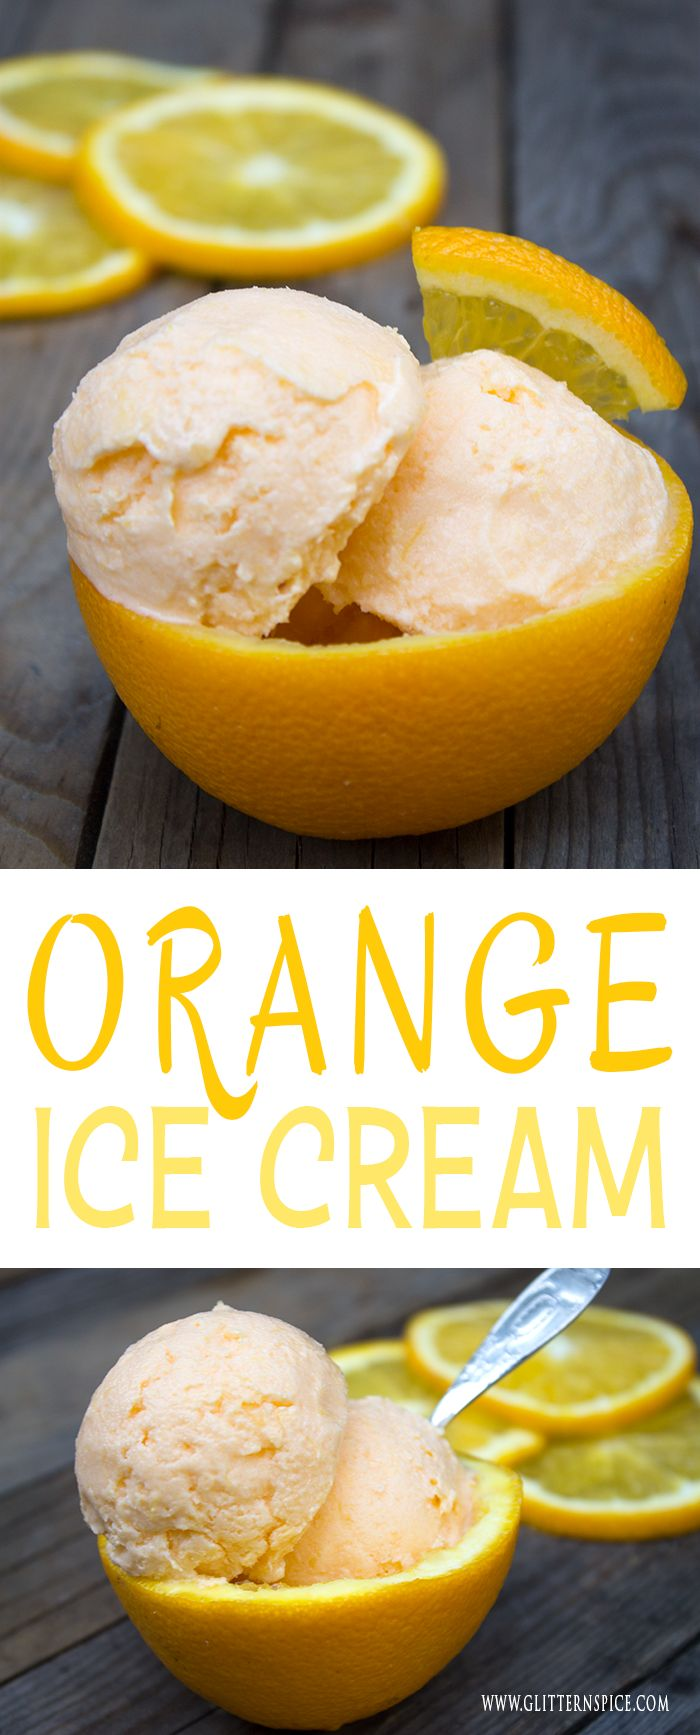 Homemade Orange Ice Cream